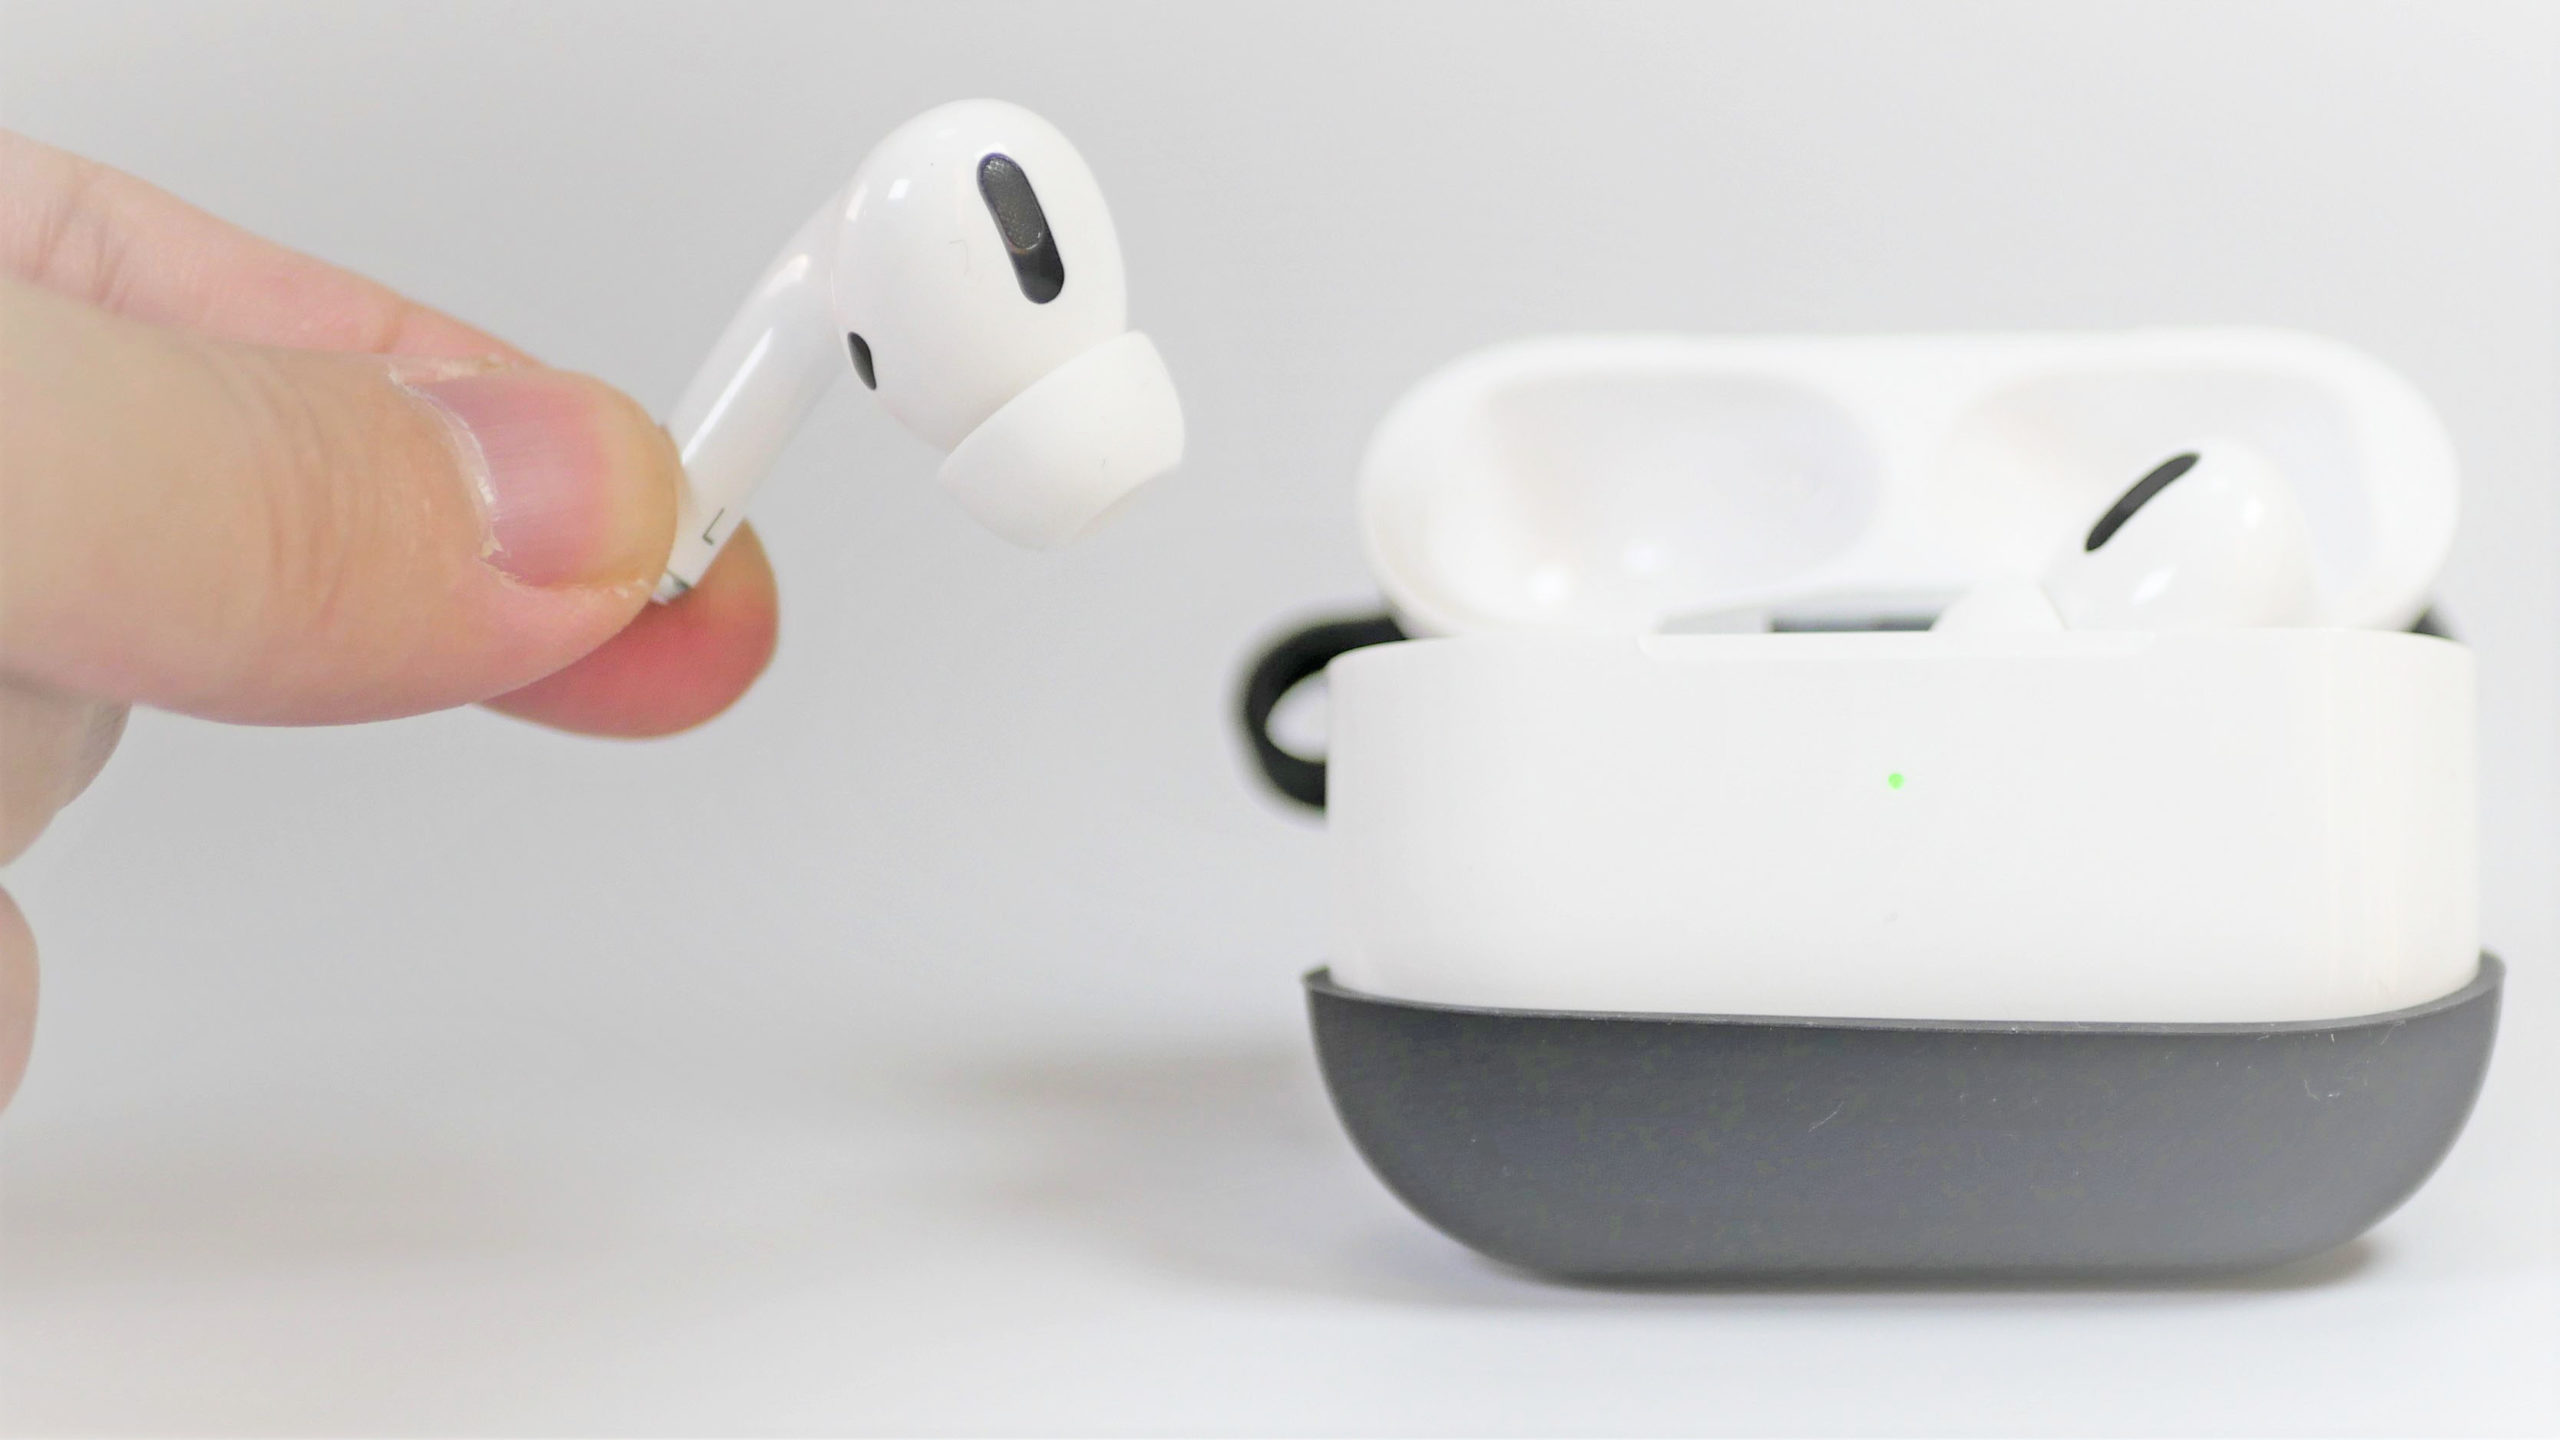 Airpods Pro ペアリング